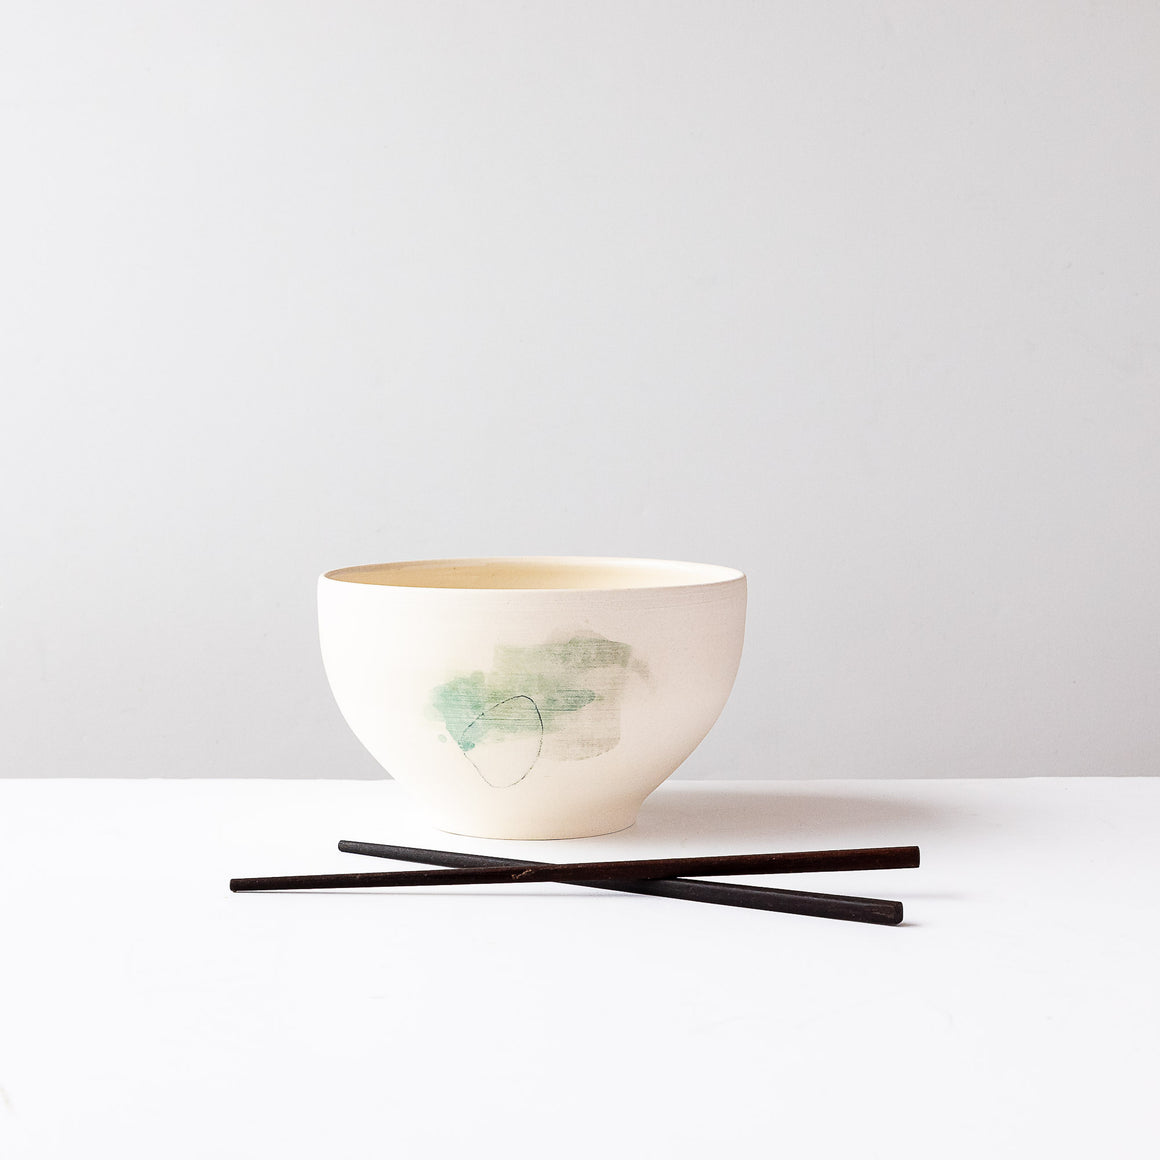 Blue Pattern - Large Hand Painted White Porcelain Bowl Shown with Shop Sticks - Sold by Chic & Basta